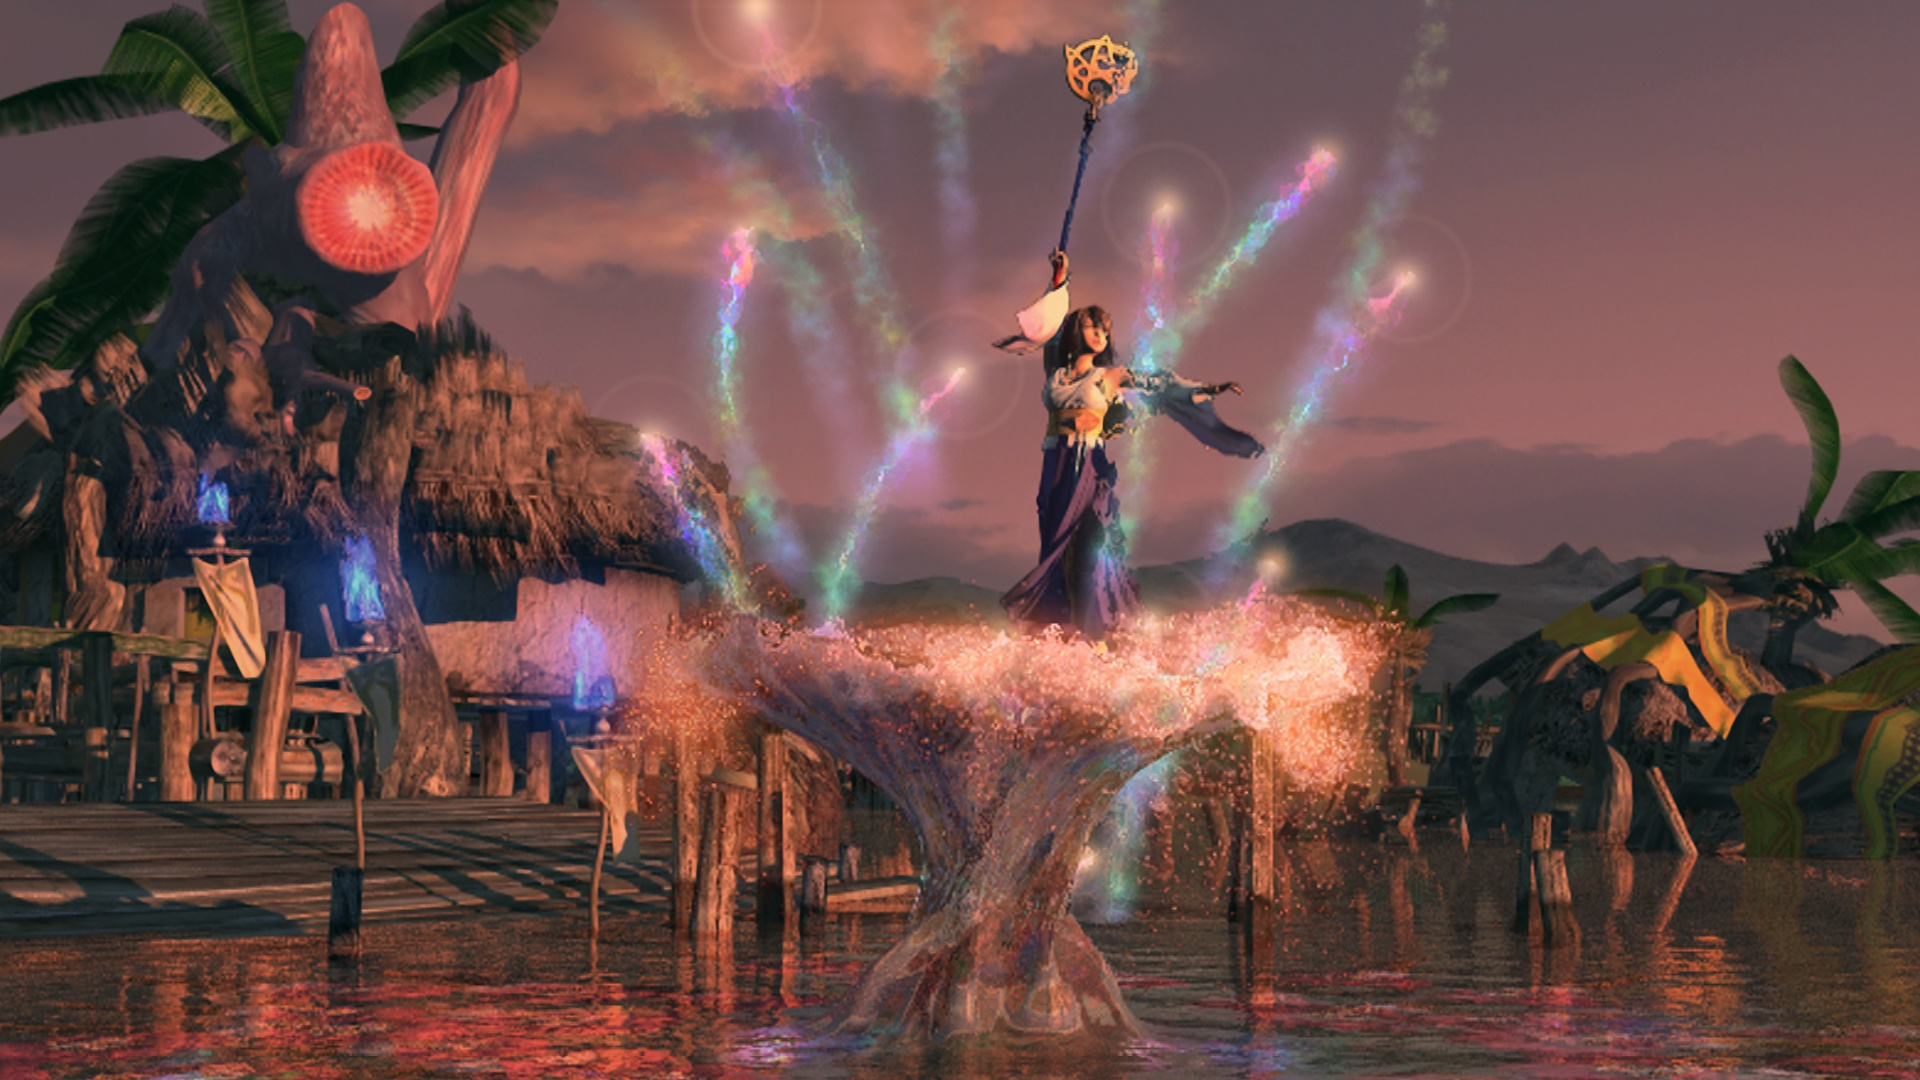 Final-Fantasy-X-Yuna-storie-amore-videogiochi-Tech-Princess